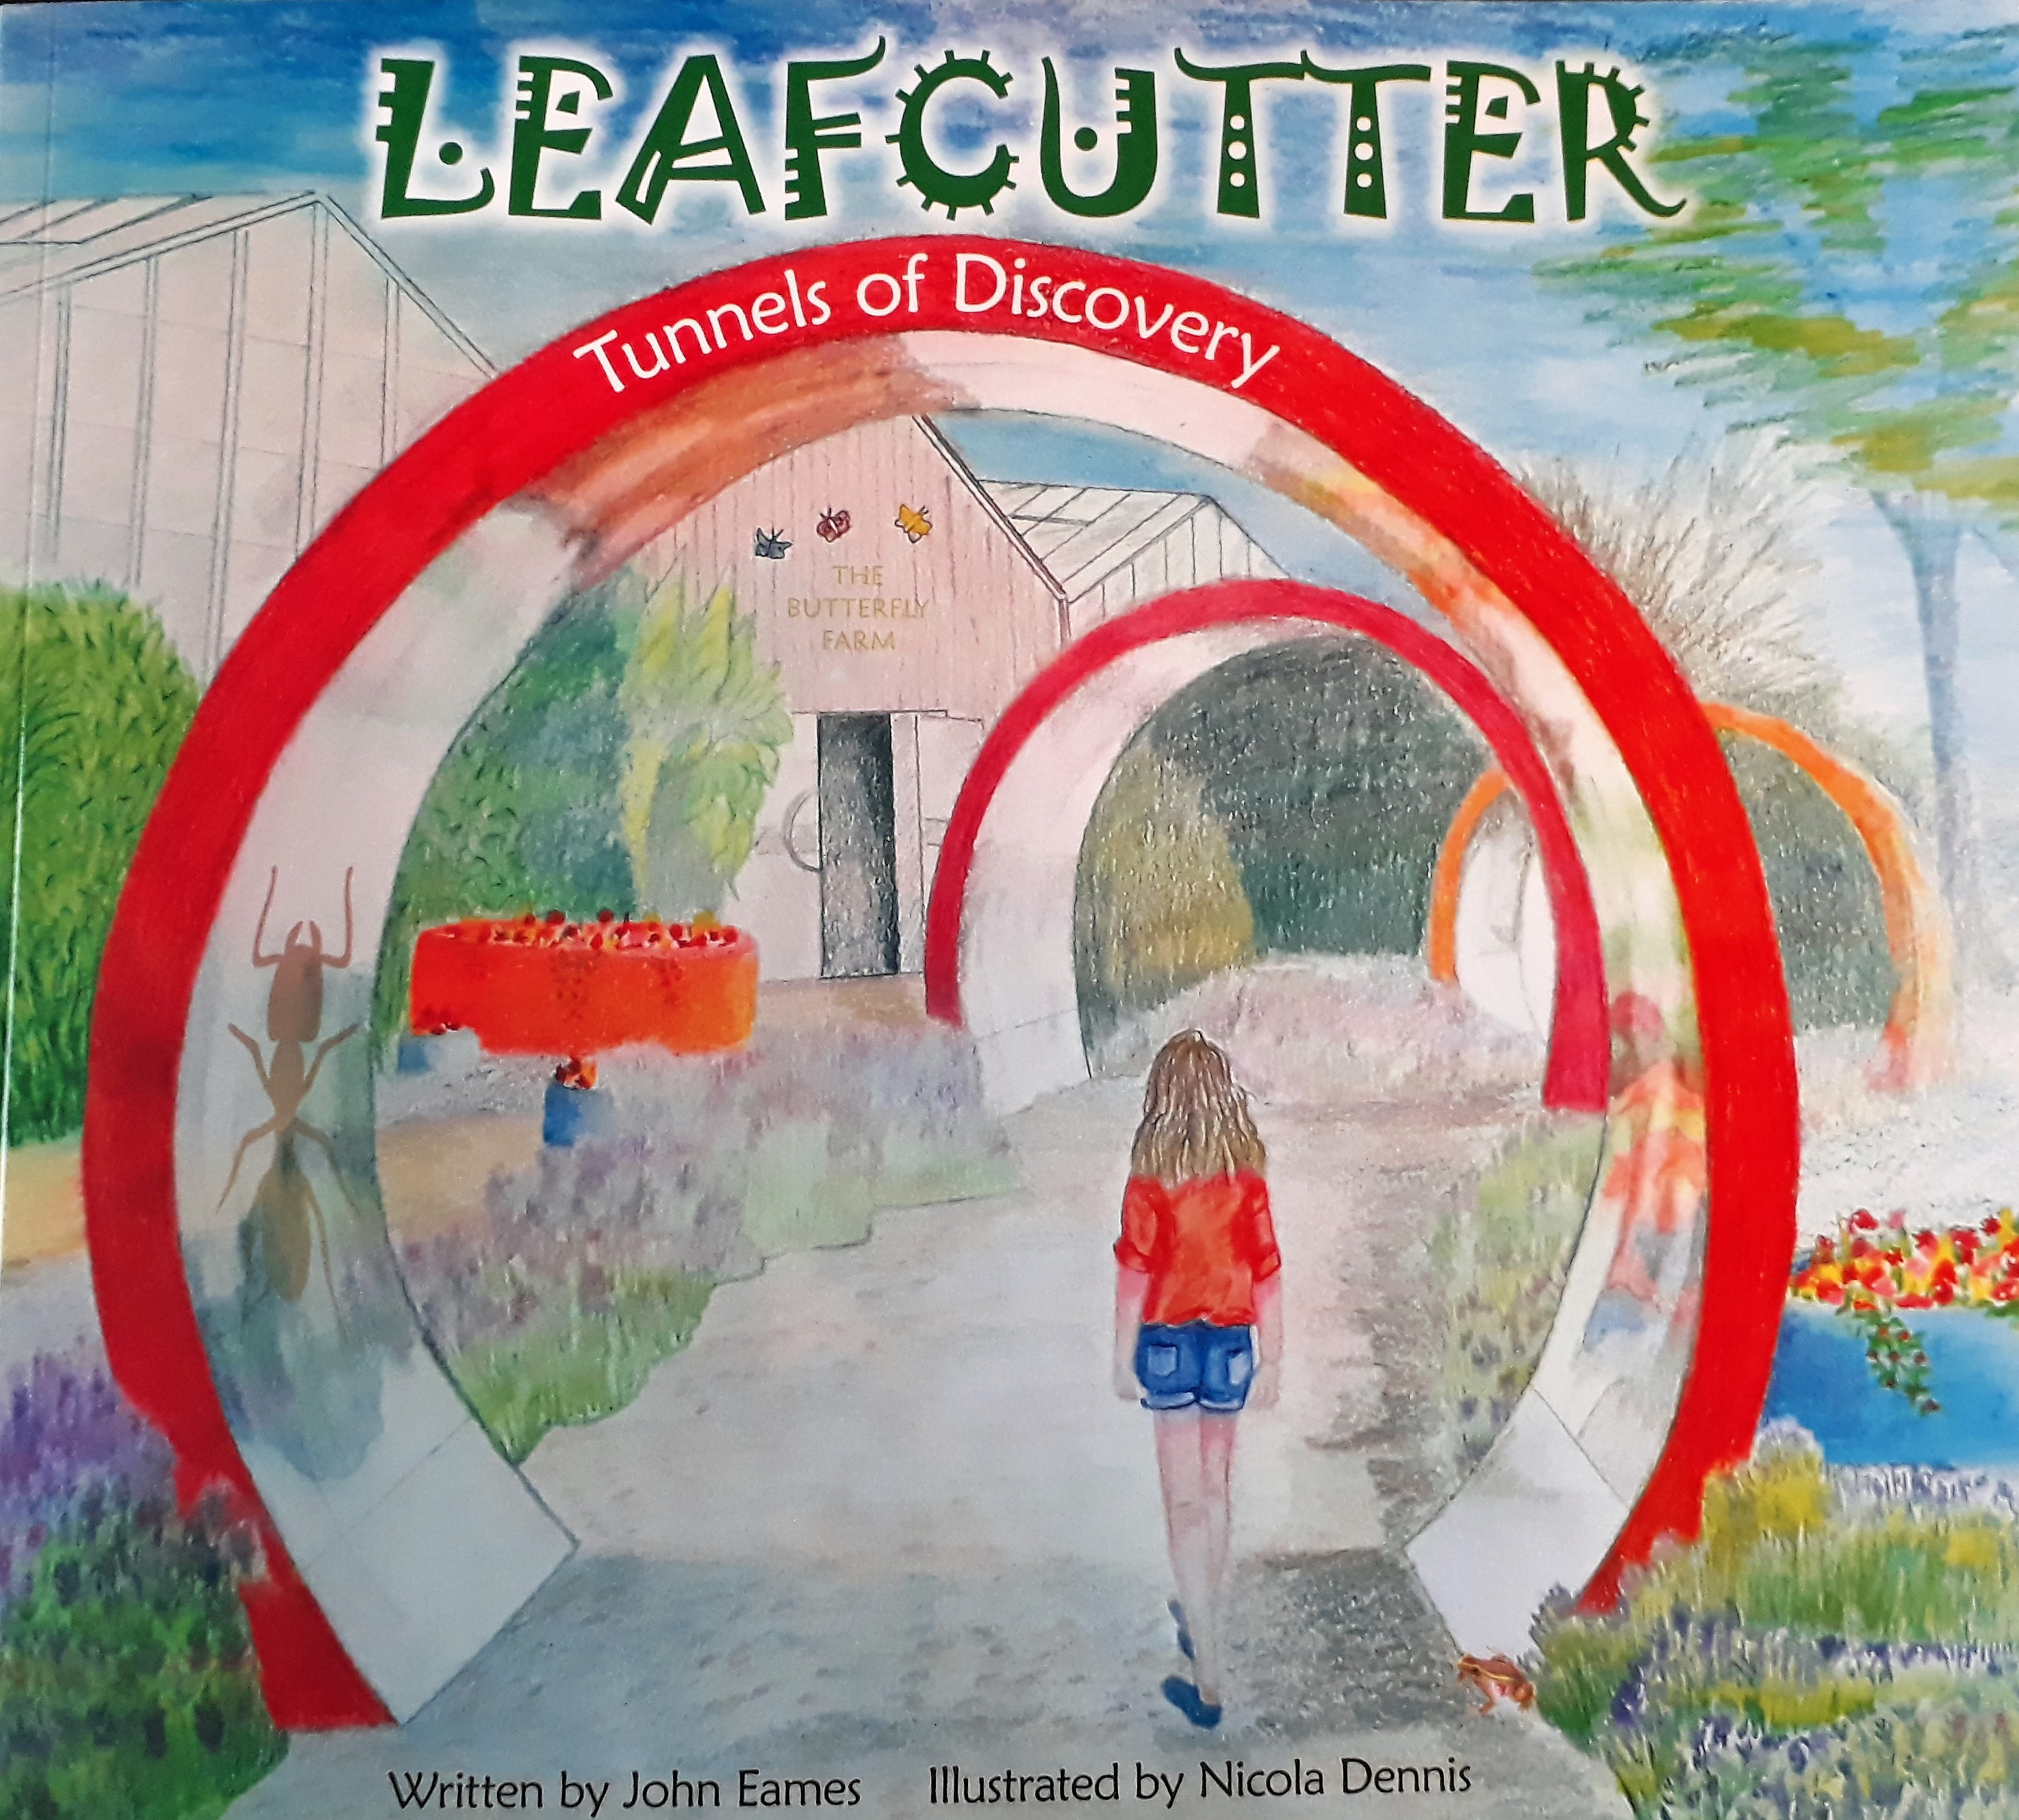 Leafcutter-Tunnels of Discovery